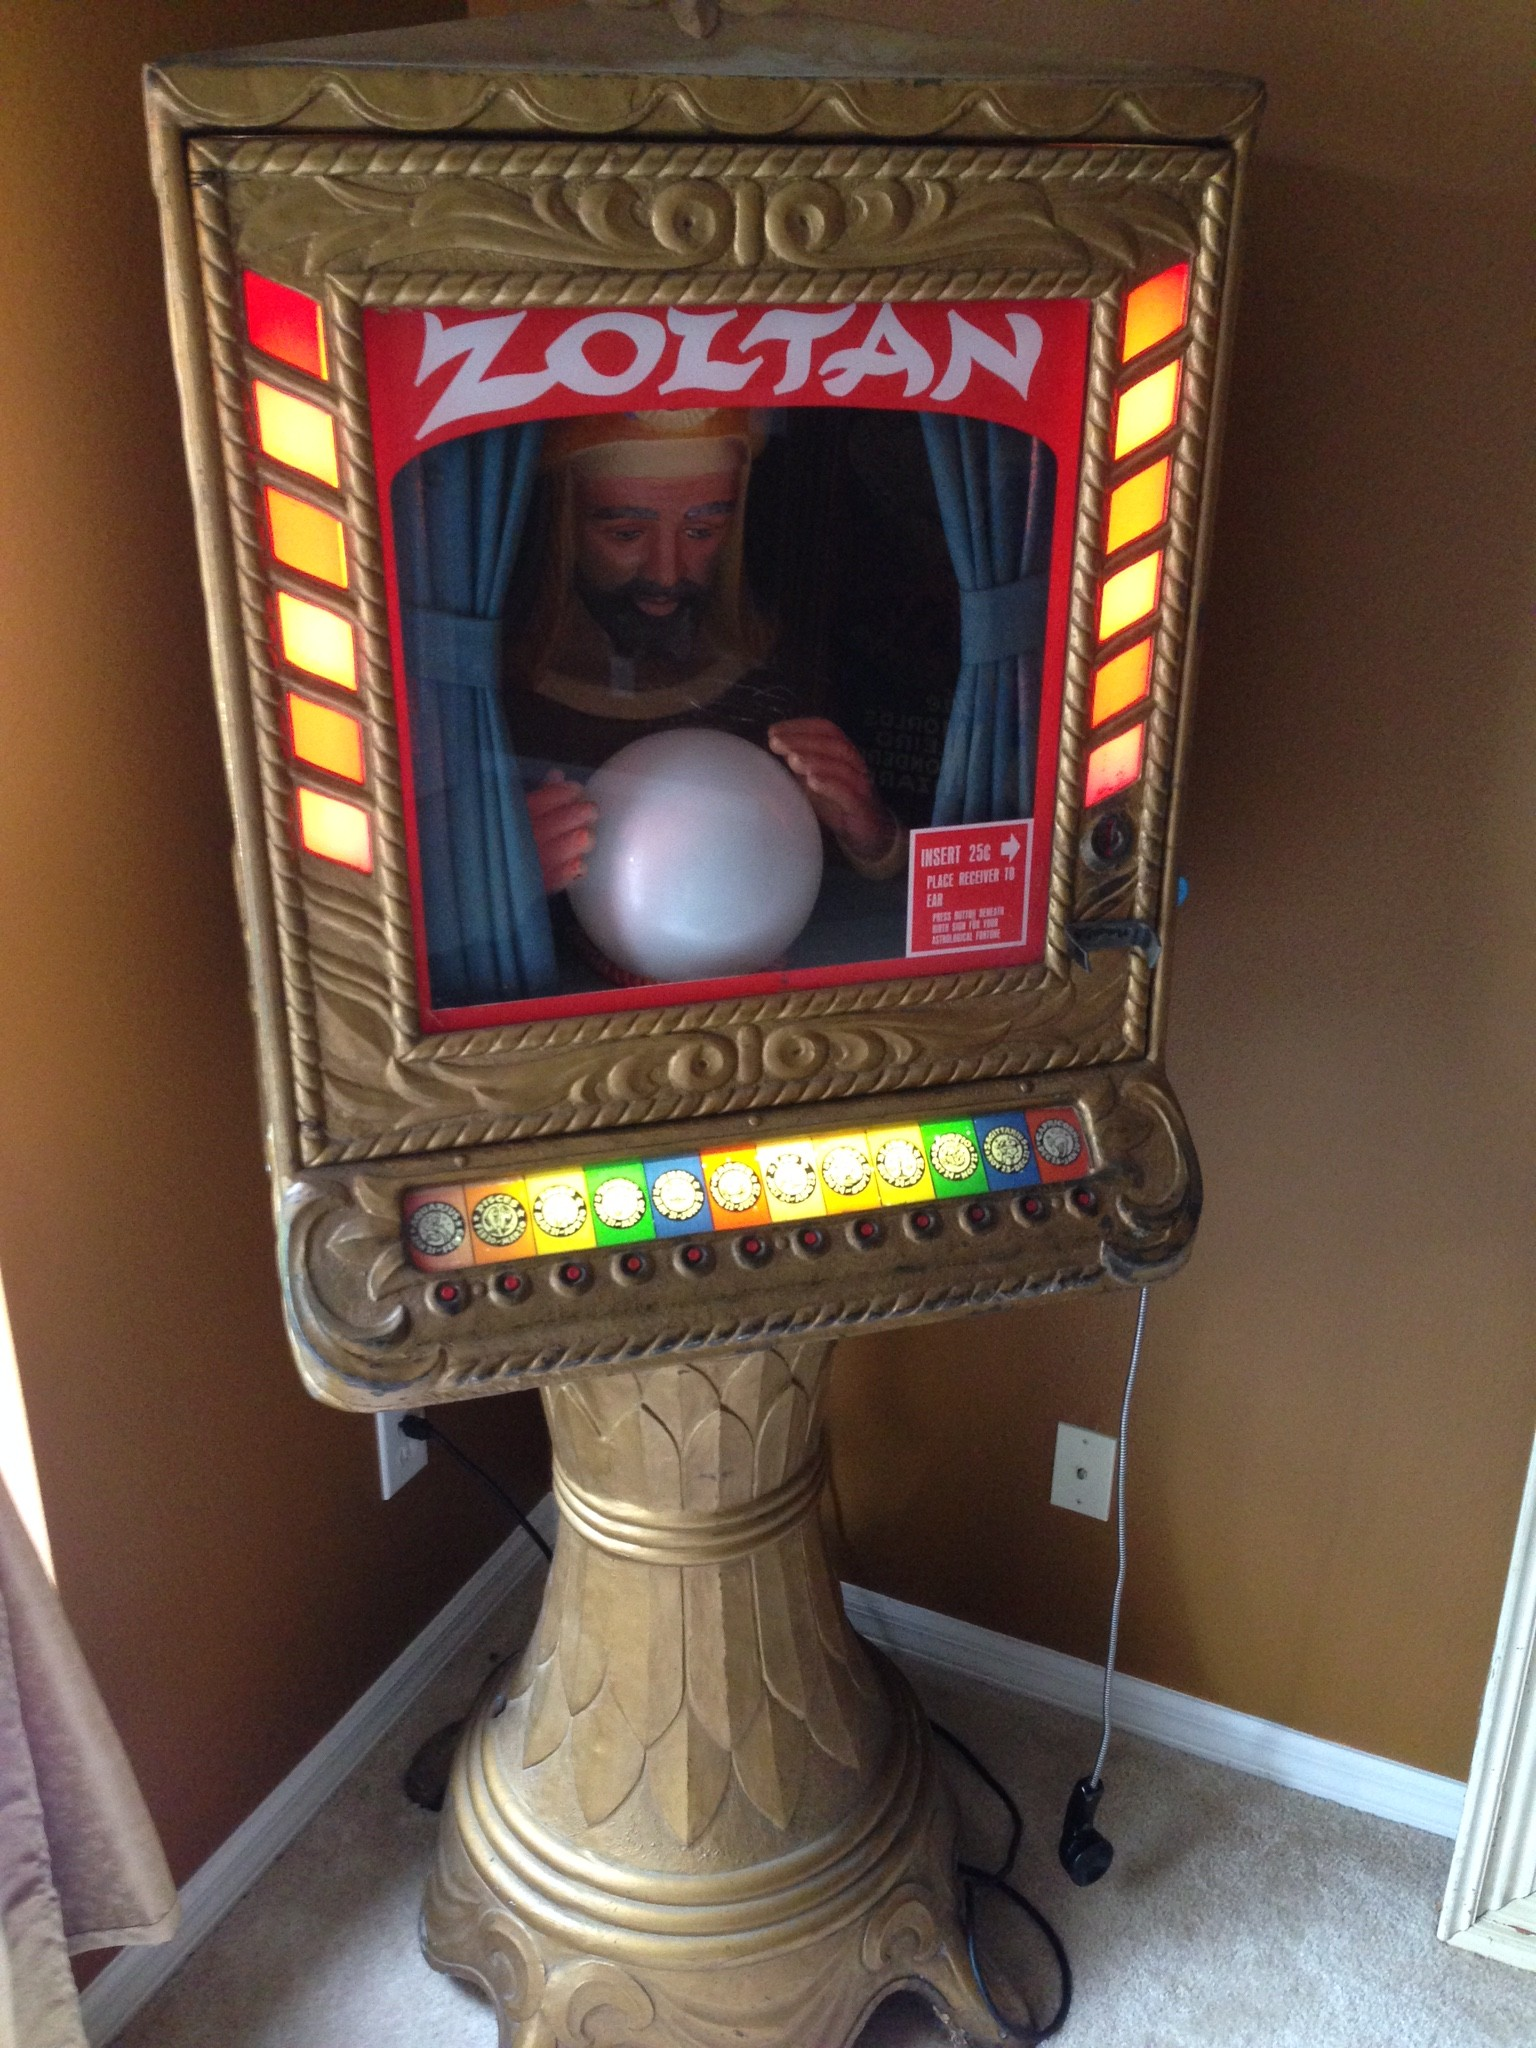 antique fortune teller machine